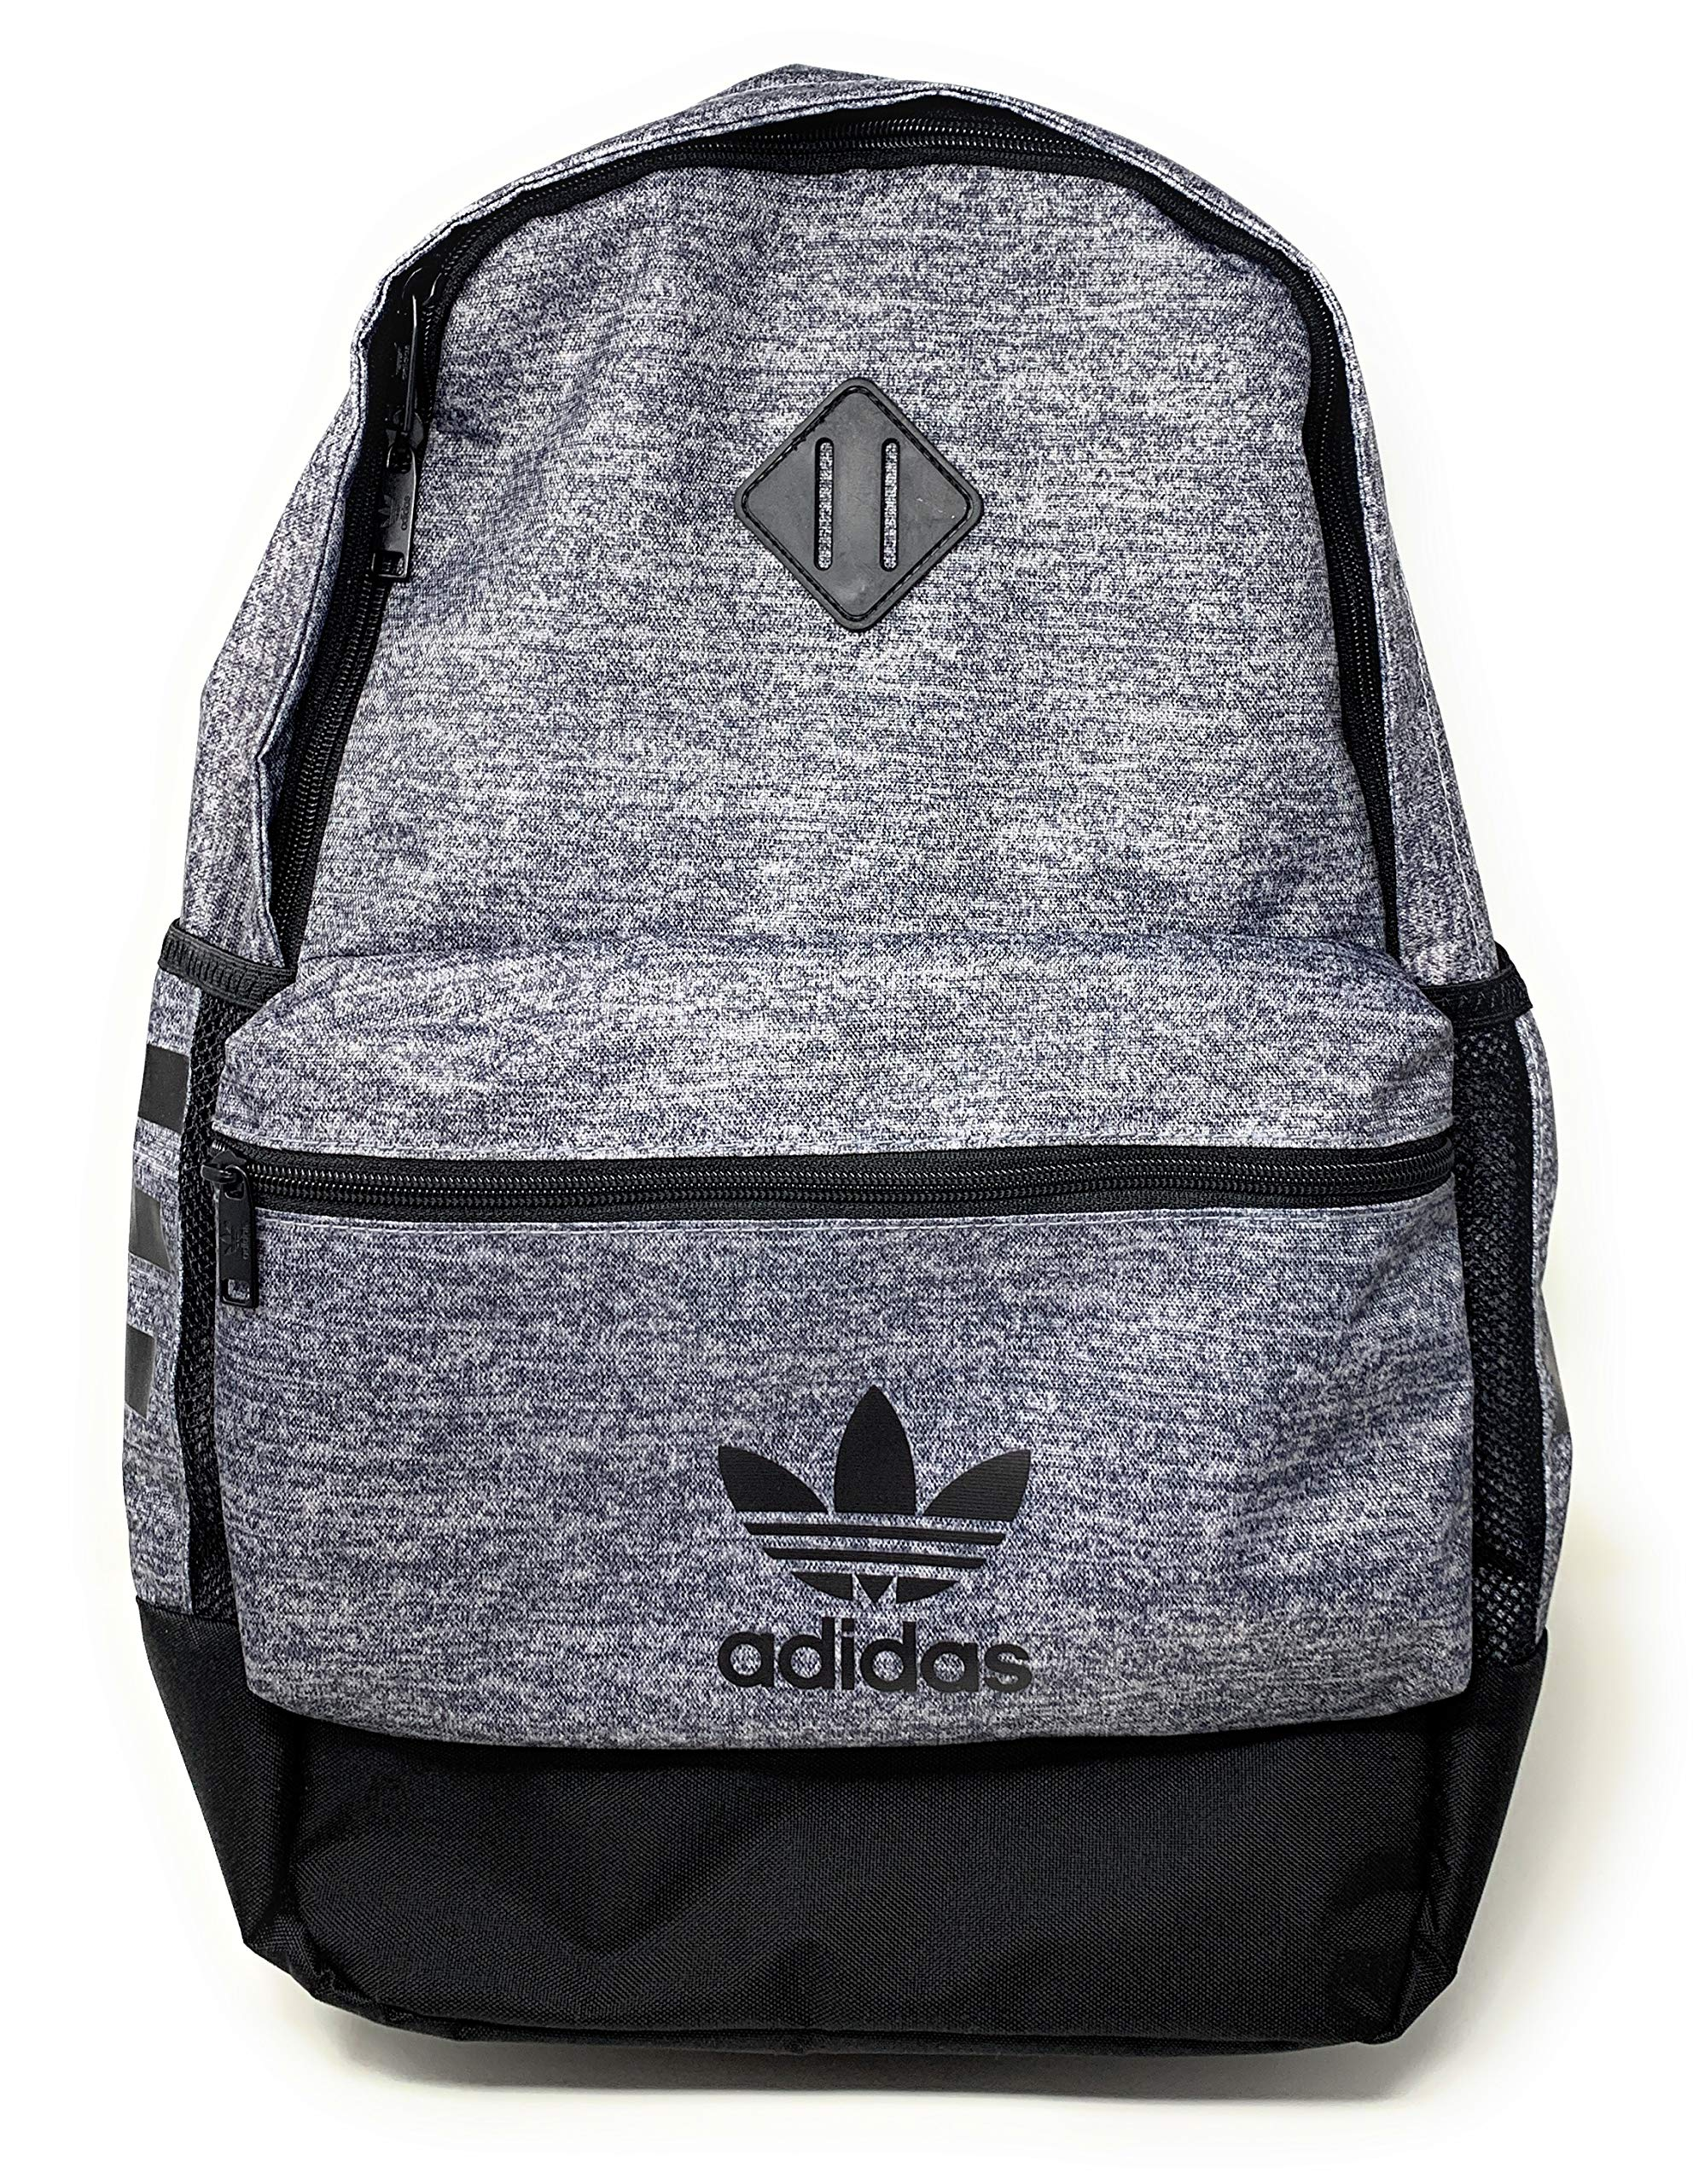 adidas Original Base Backpack, Onix Jersey, One Size by adidas